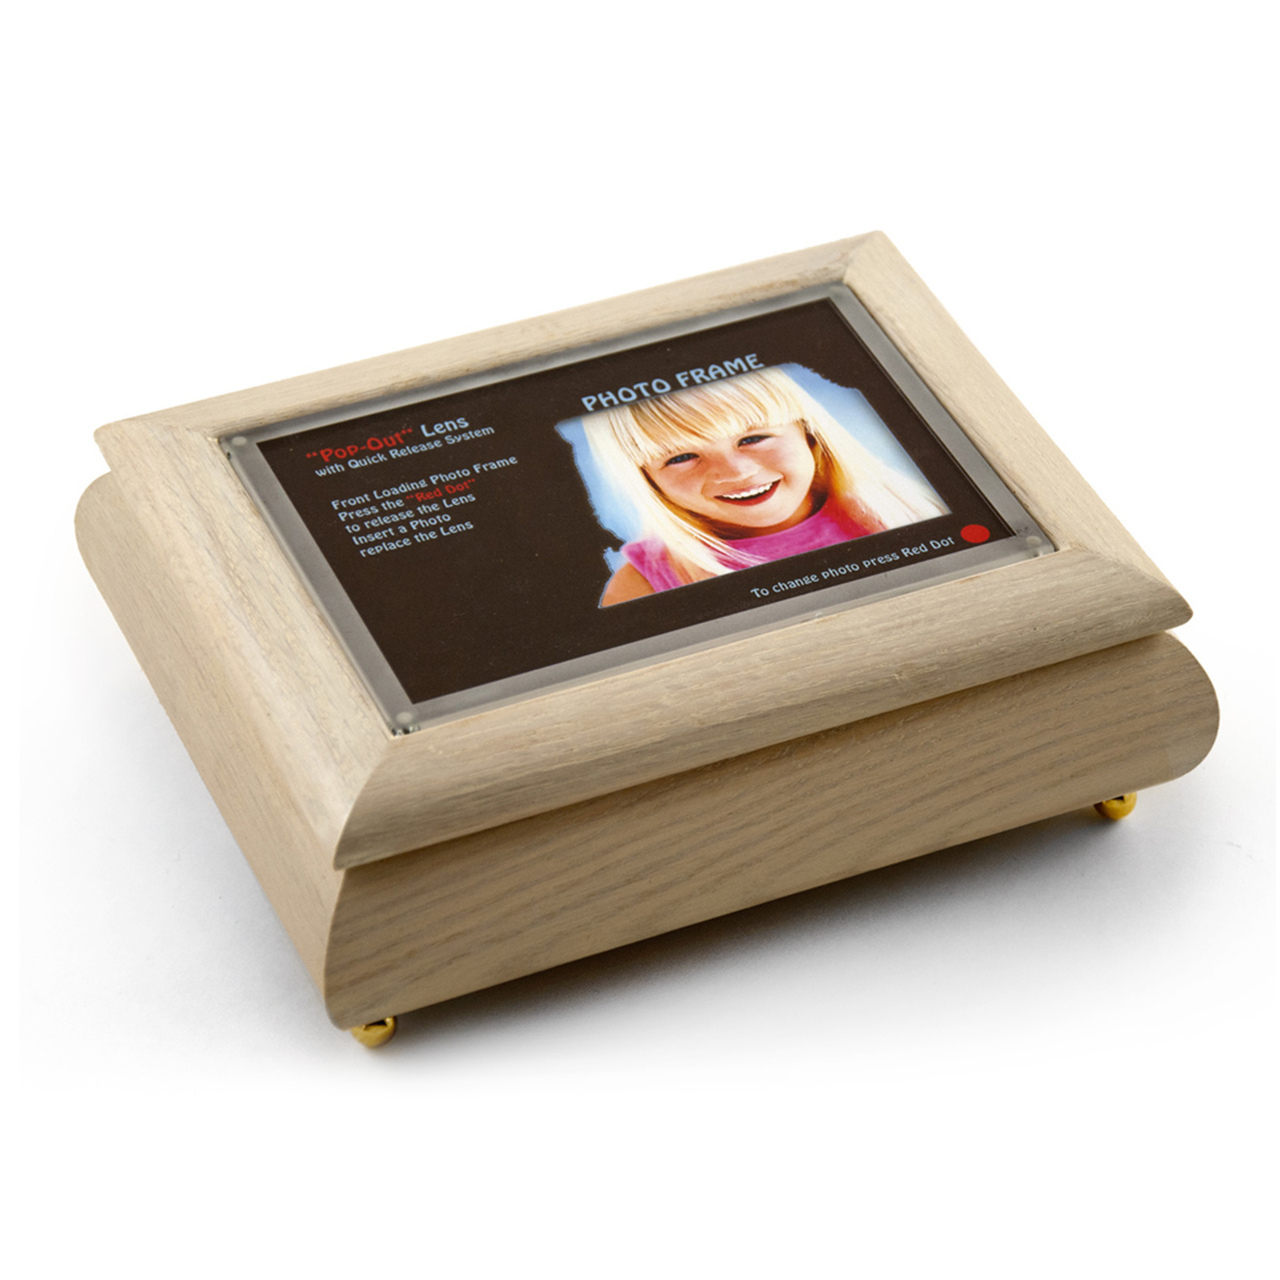 4 x 6 White Washed Photo Frame Musical Jewelry Box with New Pop-Out lens System